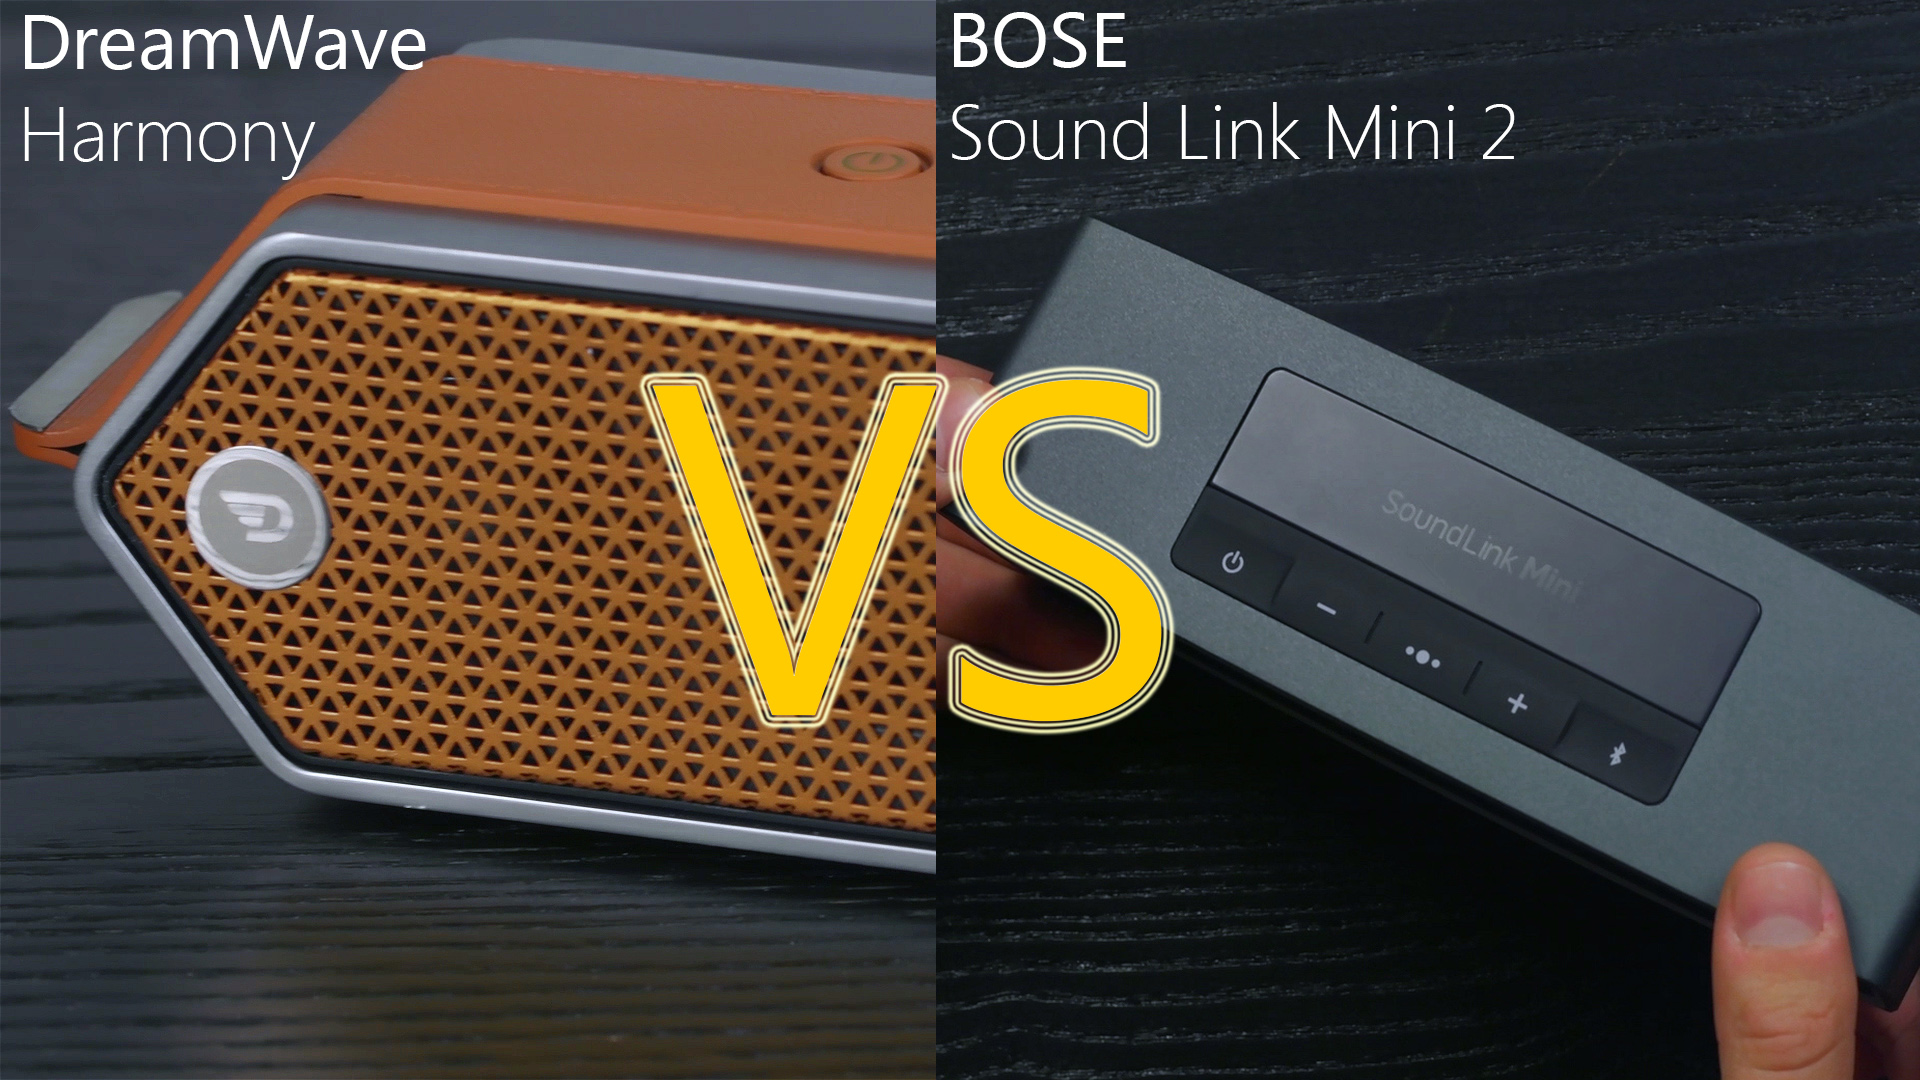 Dreamwave Harmony versus the Bose Sound Link Mini